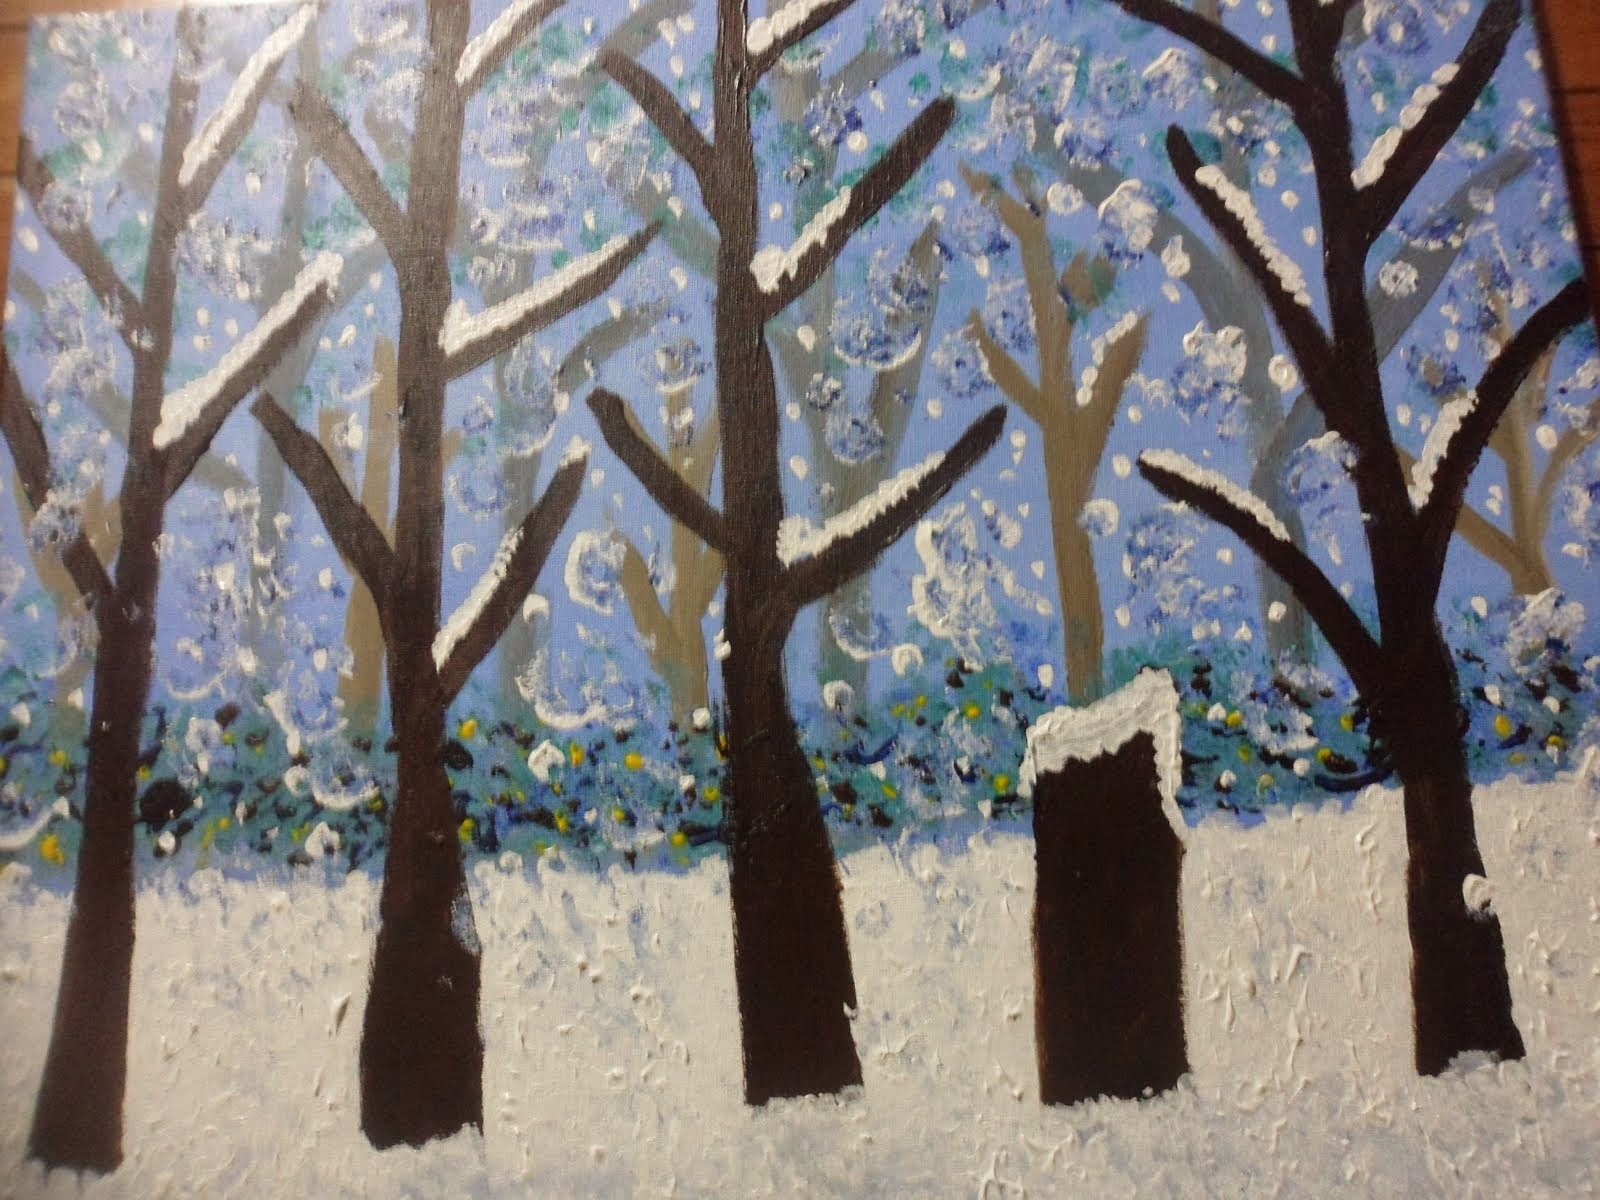 A Winter Scene by Malinda Miles